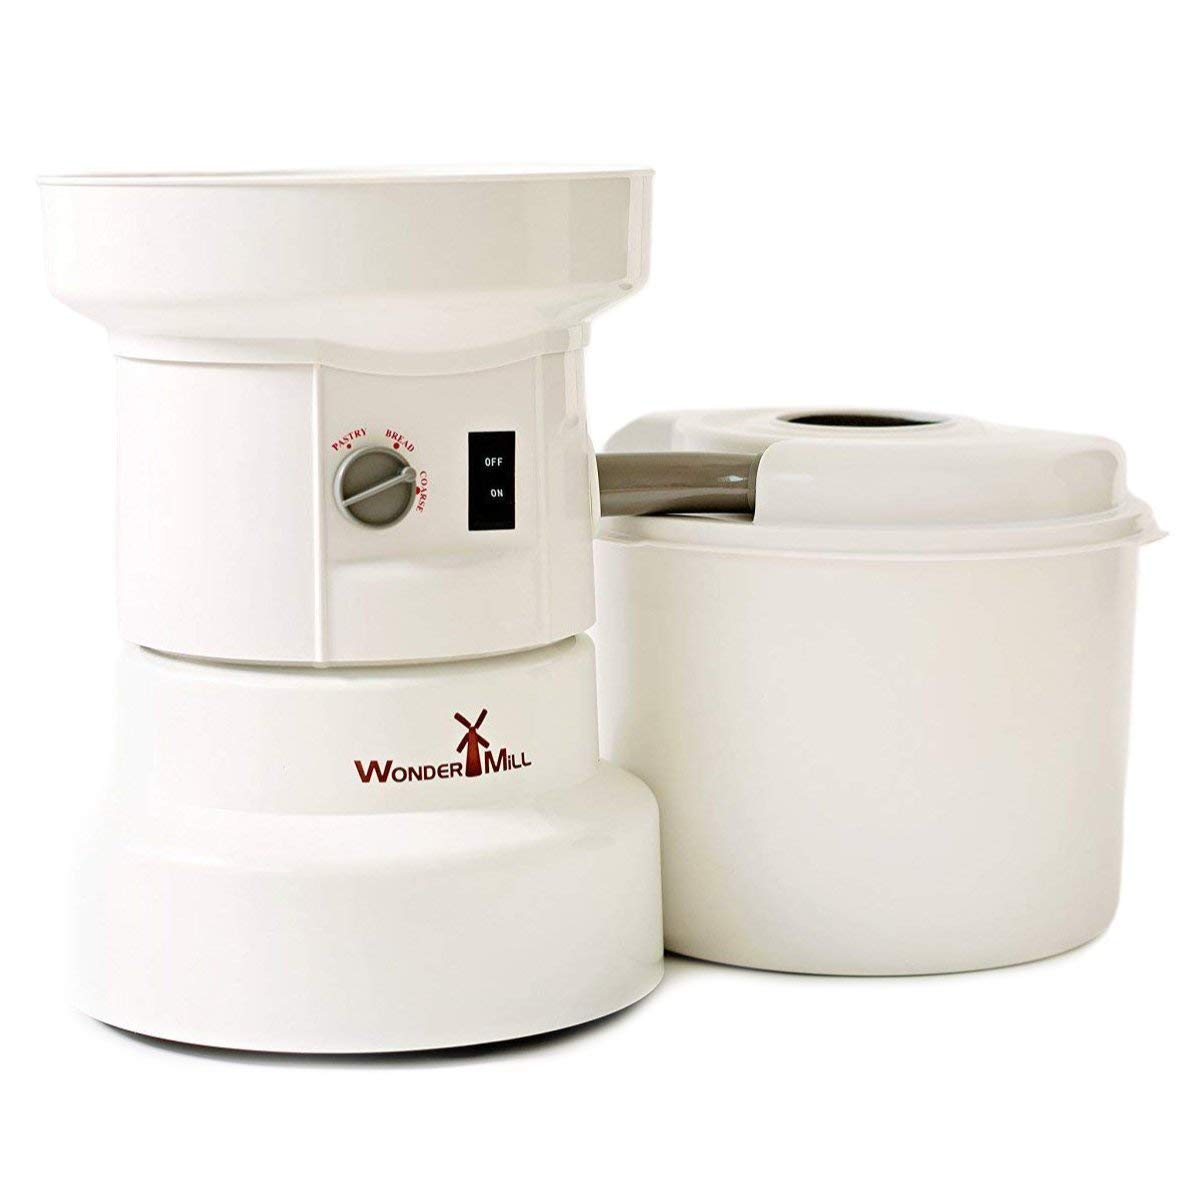 Powerful Electric Grain Mill Wheat Grinder for Home and Professional Use - High Speed Grain Grinder Flour Mill for Healthy Grains and Gluten-Free Flours - Electric Grain Mill by Wondermill,White by WONDERMILL